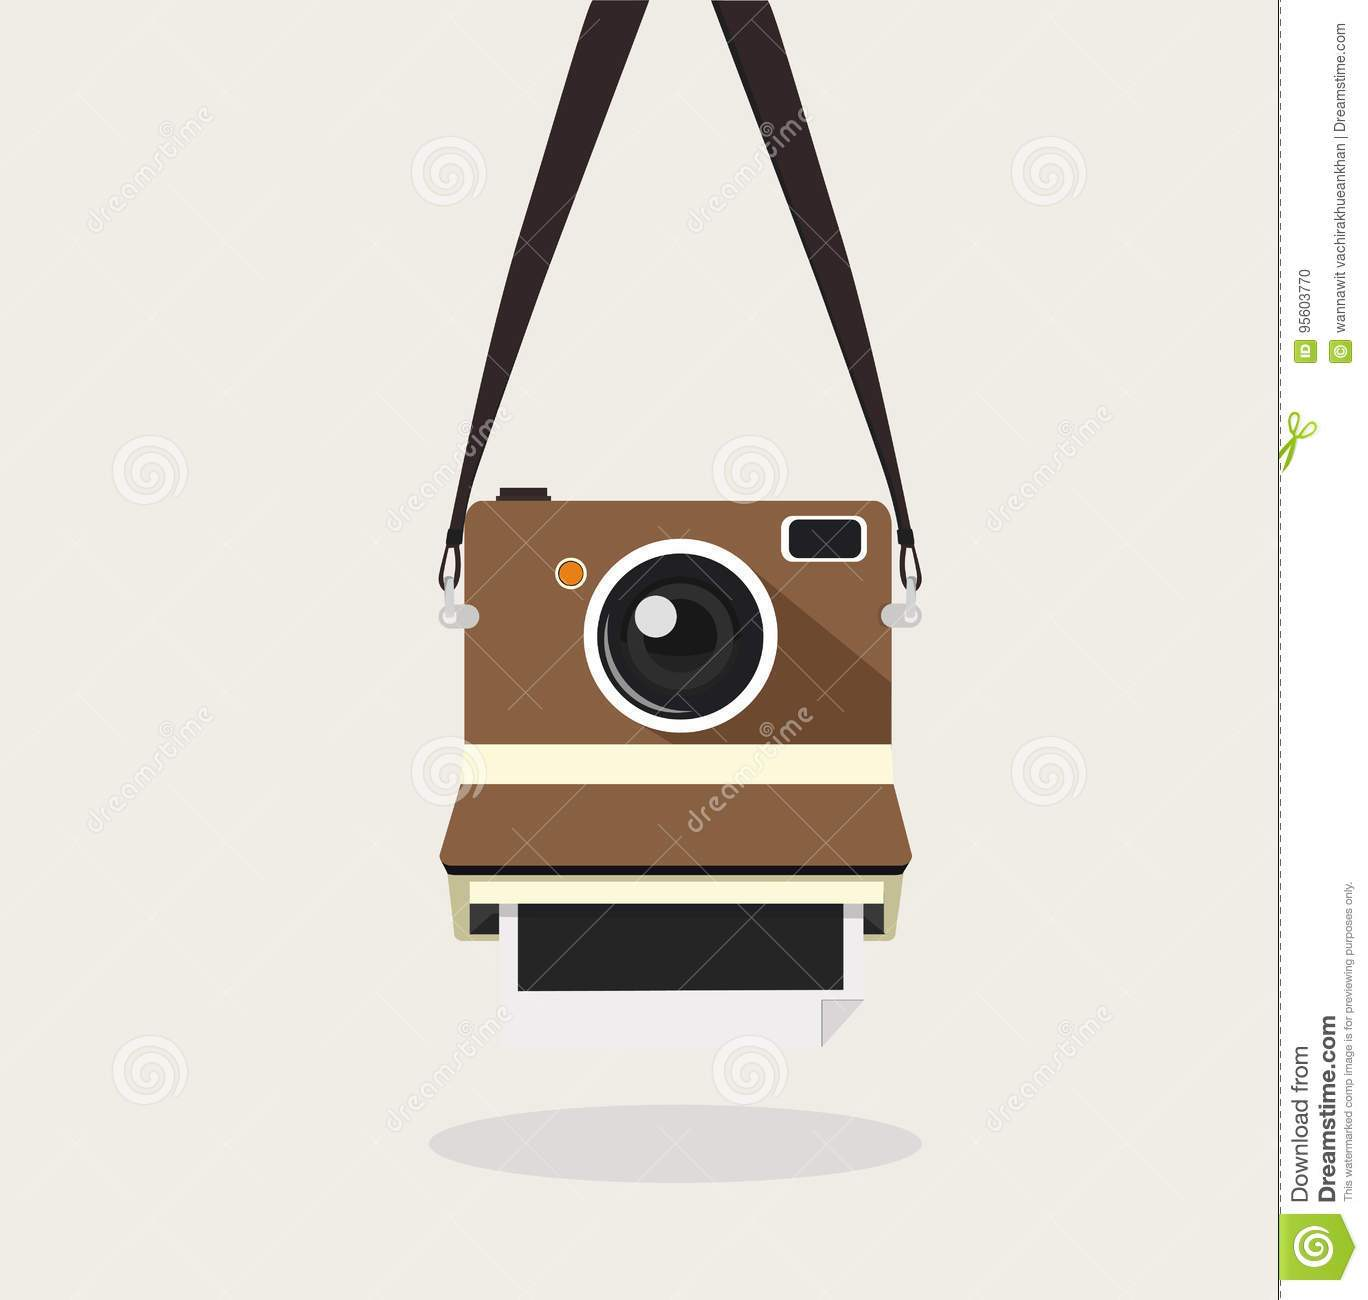 Camera and strap clipart clip library stock Camera with strap clipart 8 » Clipart Portal clip library stock